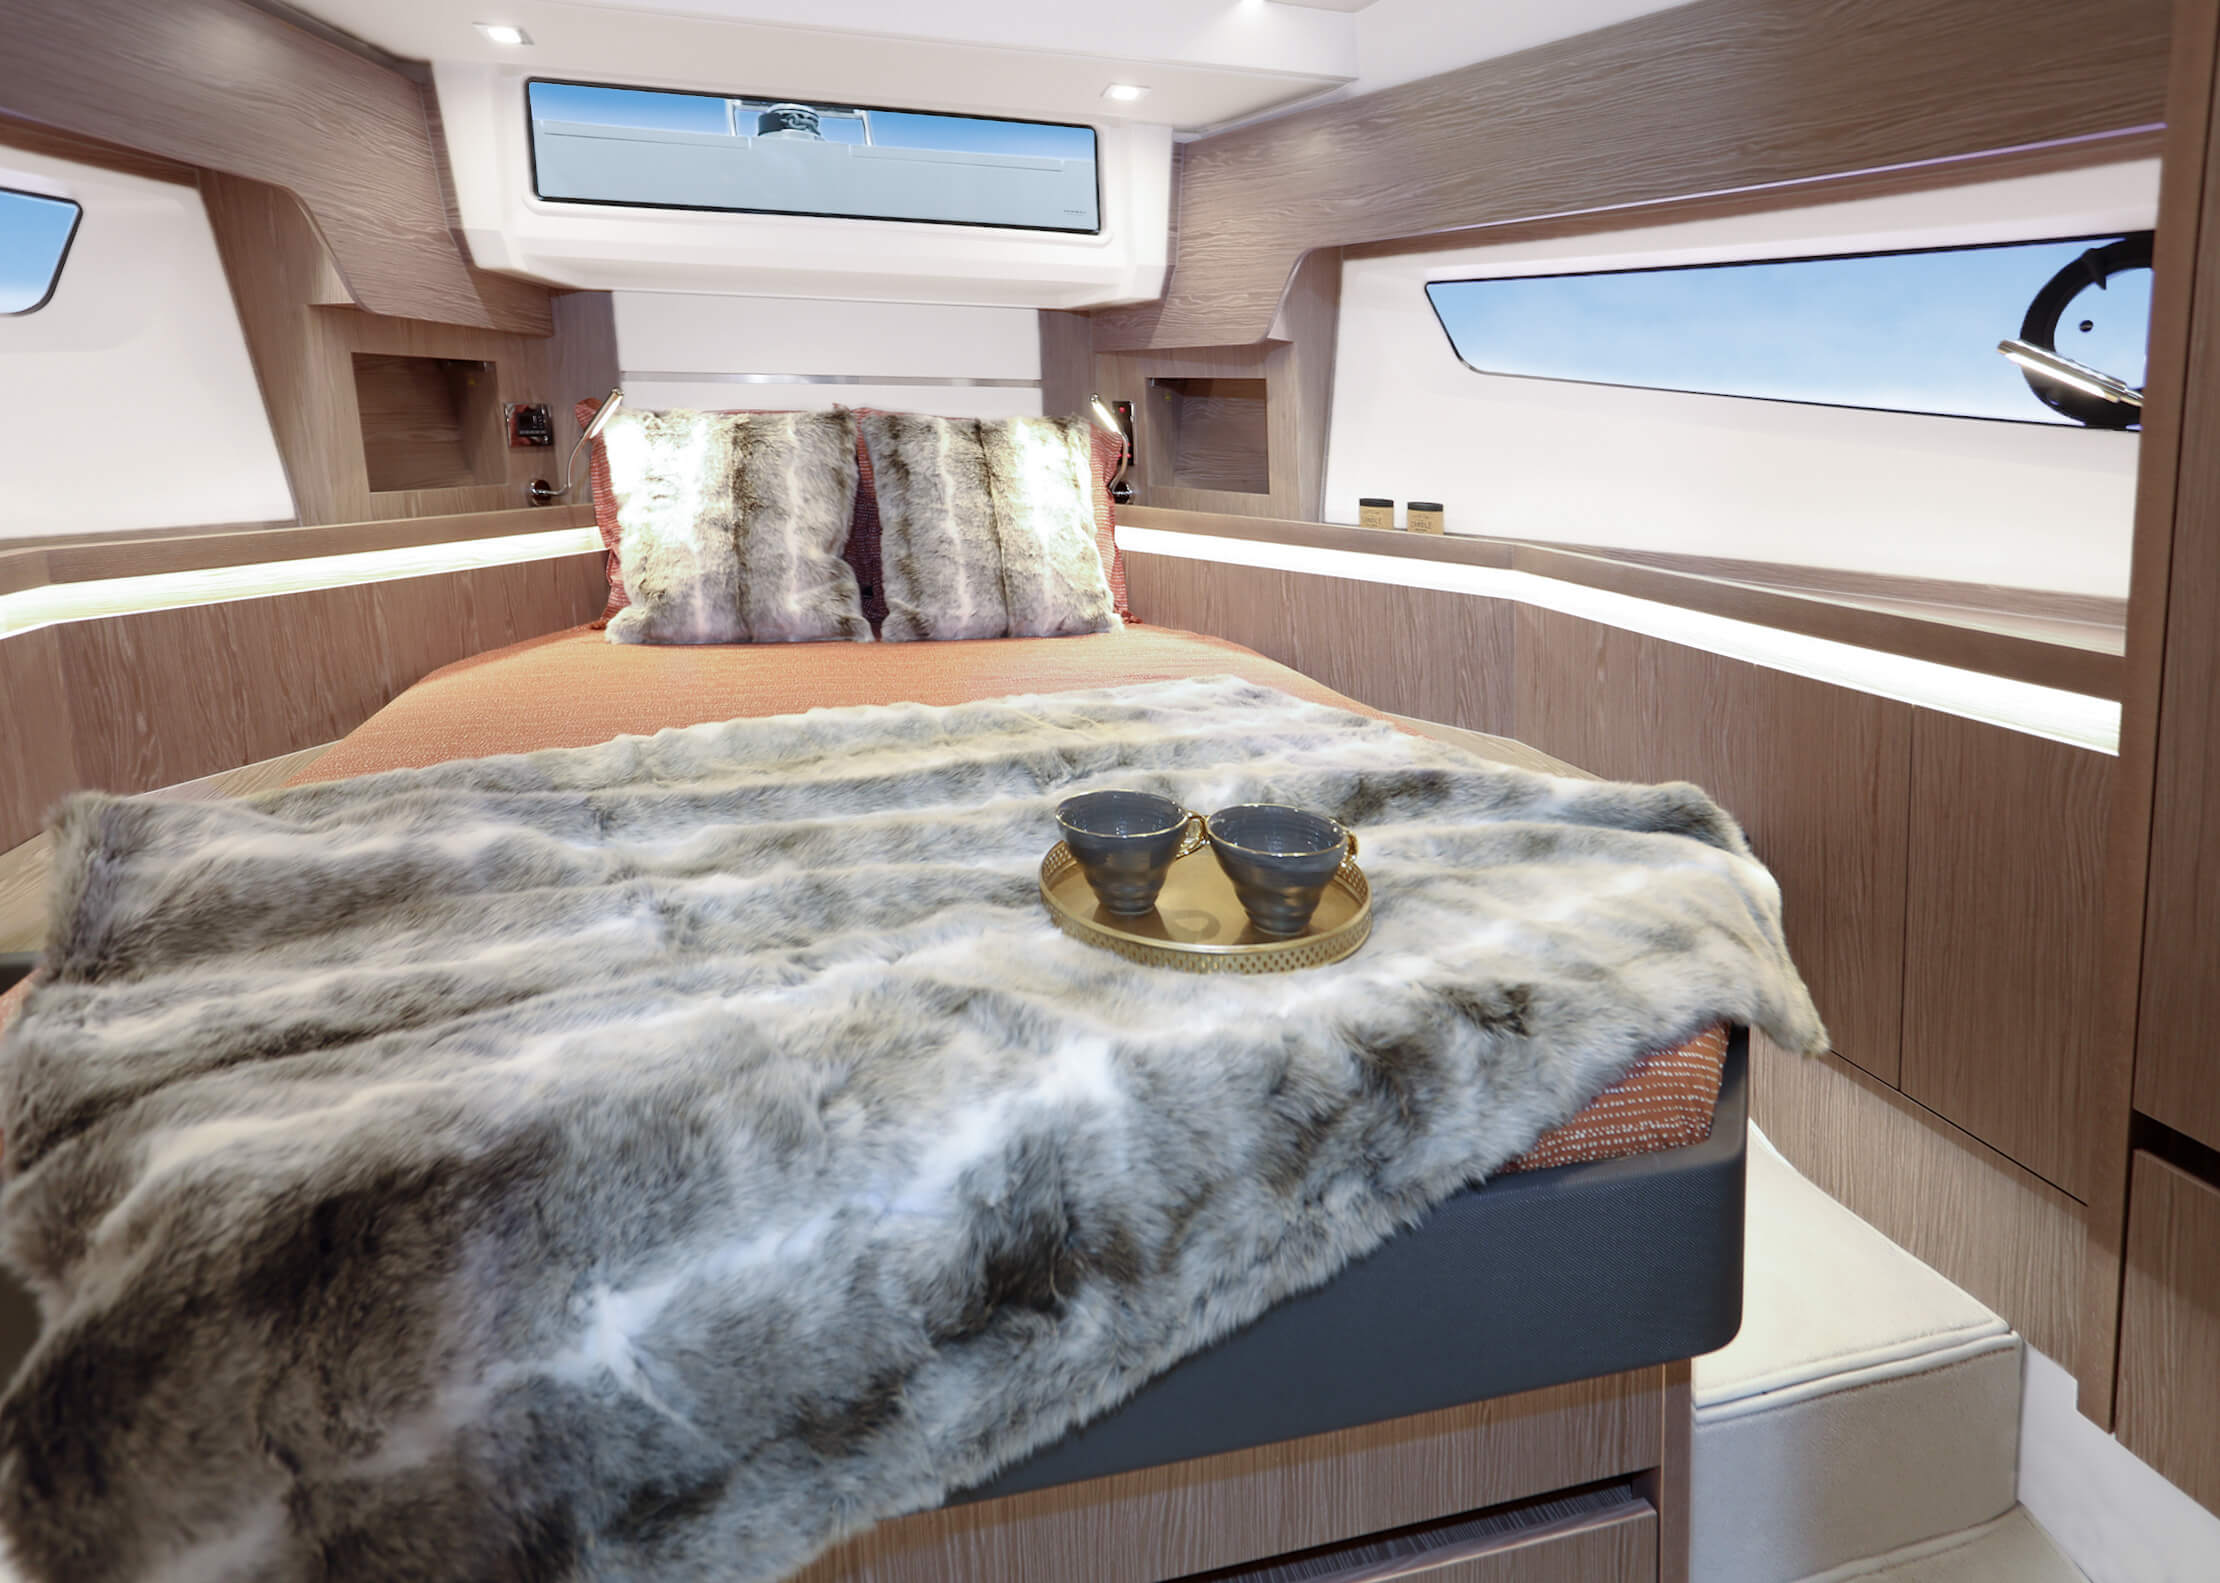 Sealine F430 Intérieur vue | VIP cabin with double berth, 2 wardrobes and sideboards with stowage and two bedside tables. 1 drawer underneath the bed. | Sealine